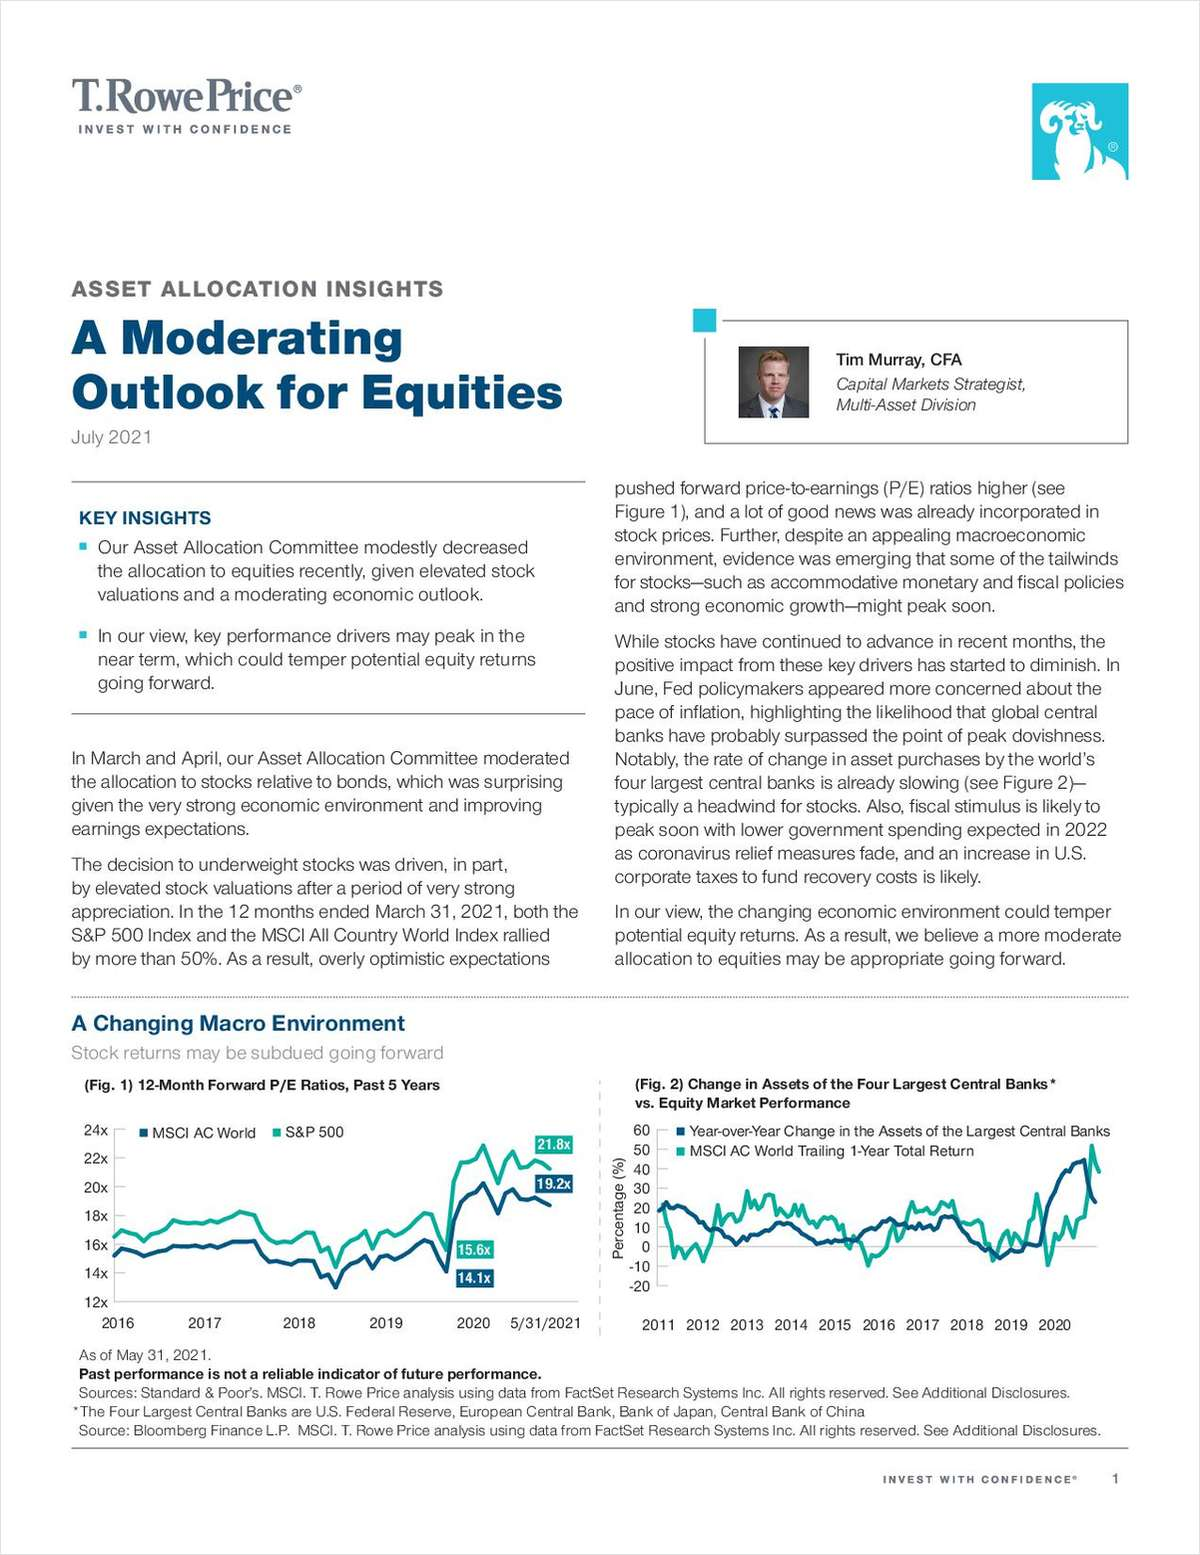 Asset Allocation Insights: A Moderating Outlook for Equities